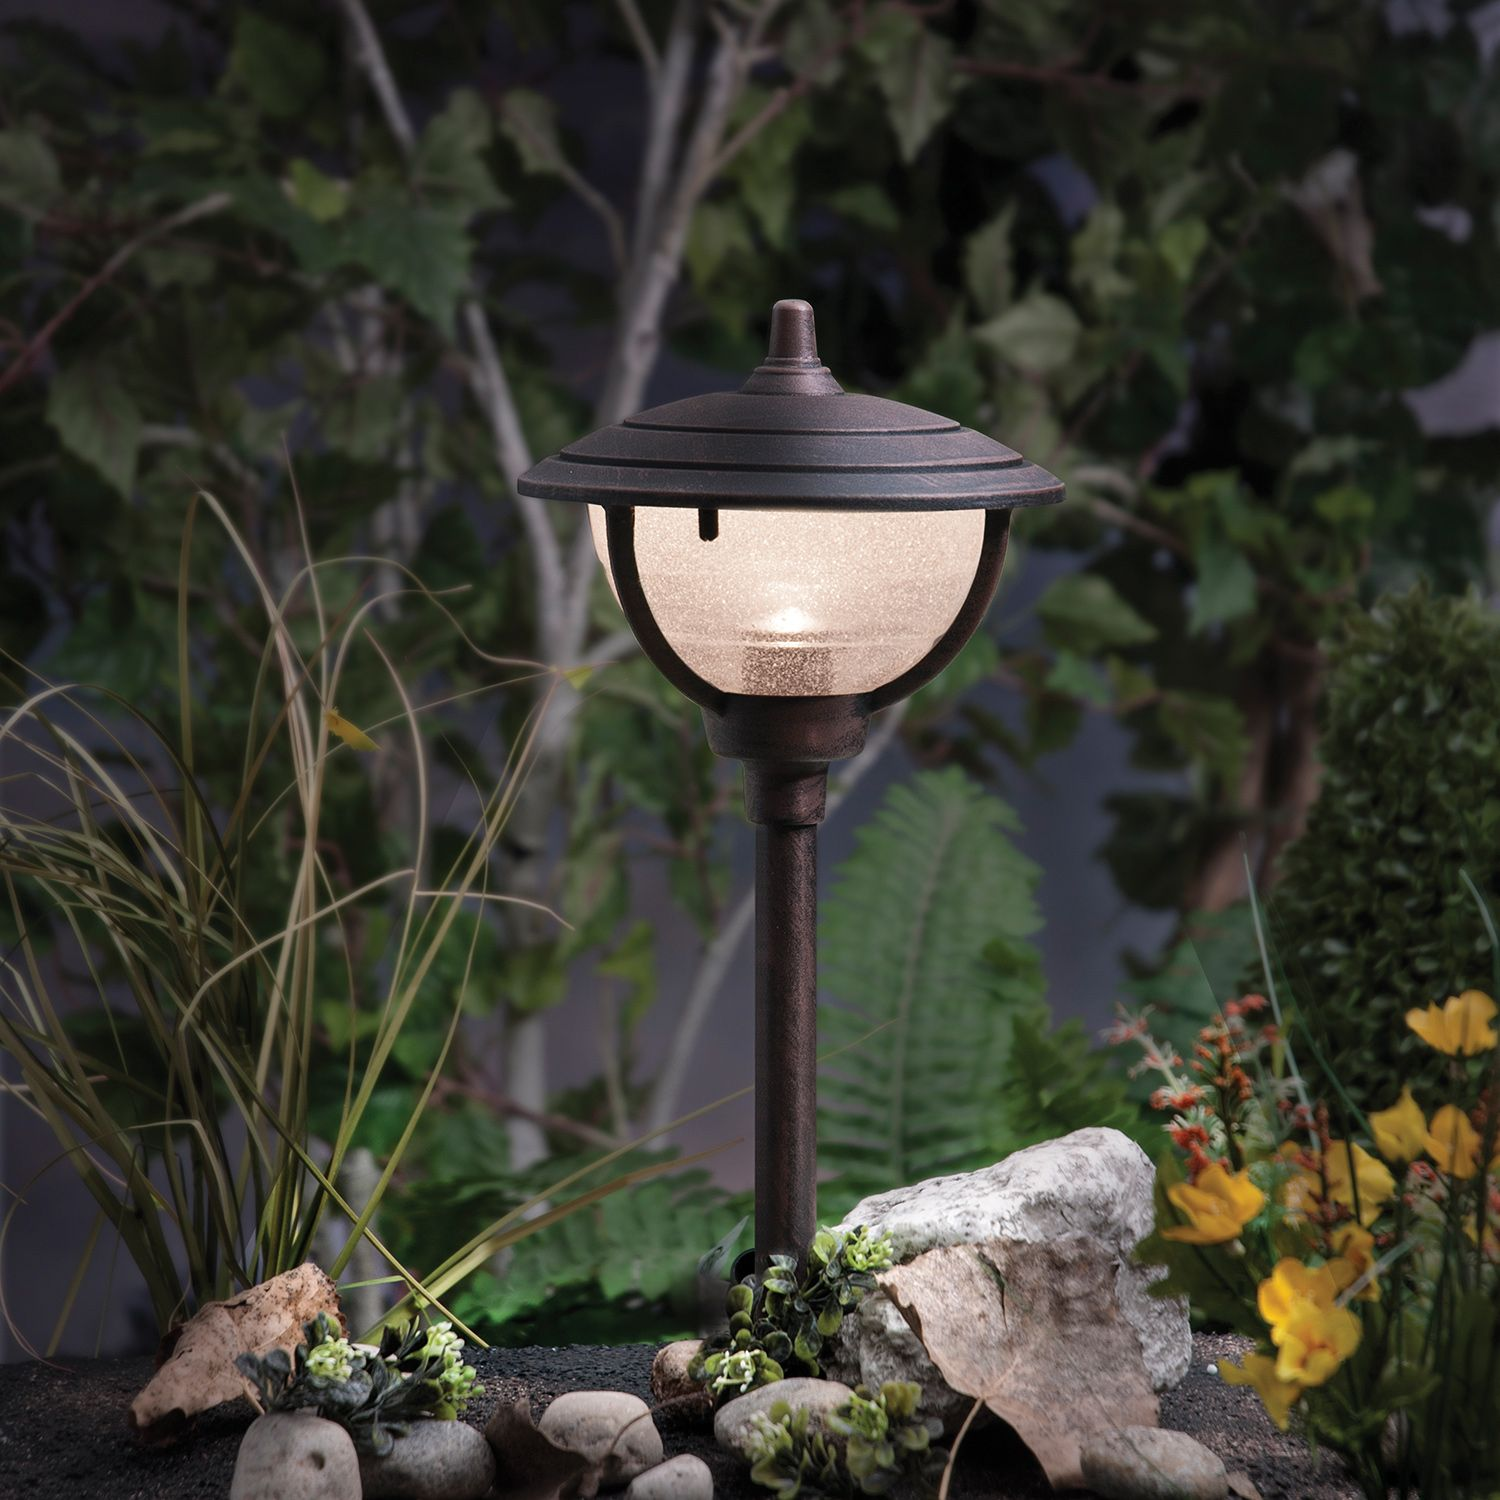 Shed Some Light On Your Landscape With A Palm Island Low Voltage Path Light Complete With An Antique Copper Landscape Lighting Path Lights Landscape Materials